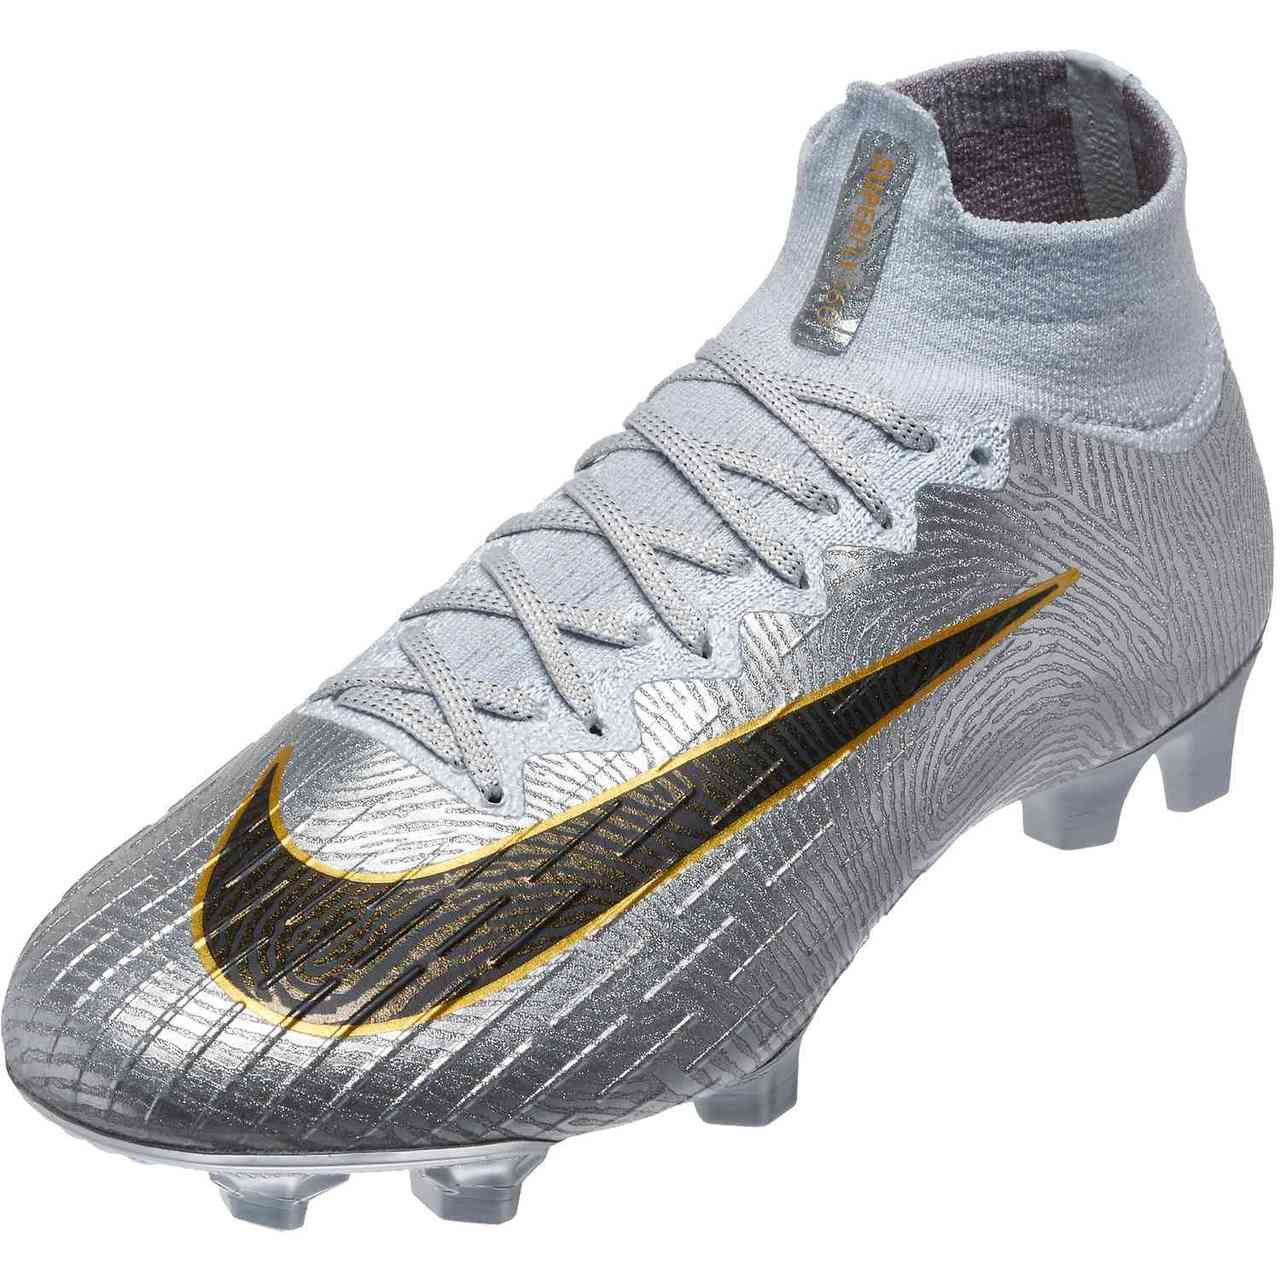 the latest 4bf11 10502 NIKE MERCURIAL SUPERFLY 6 Elite FG – SE – Pure Platinum/Black